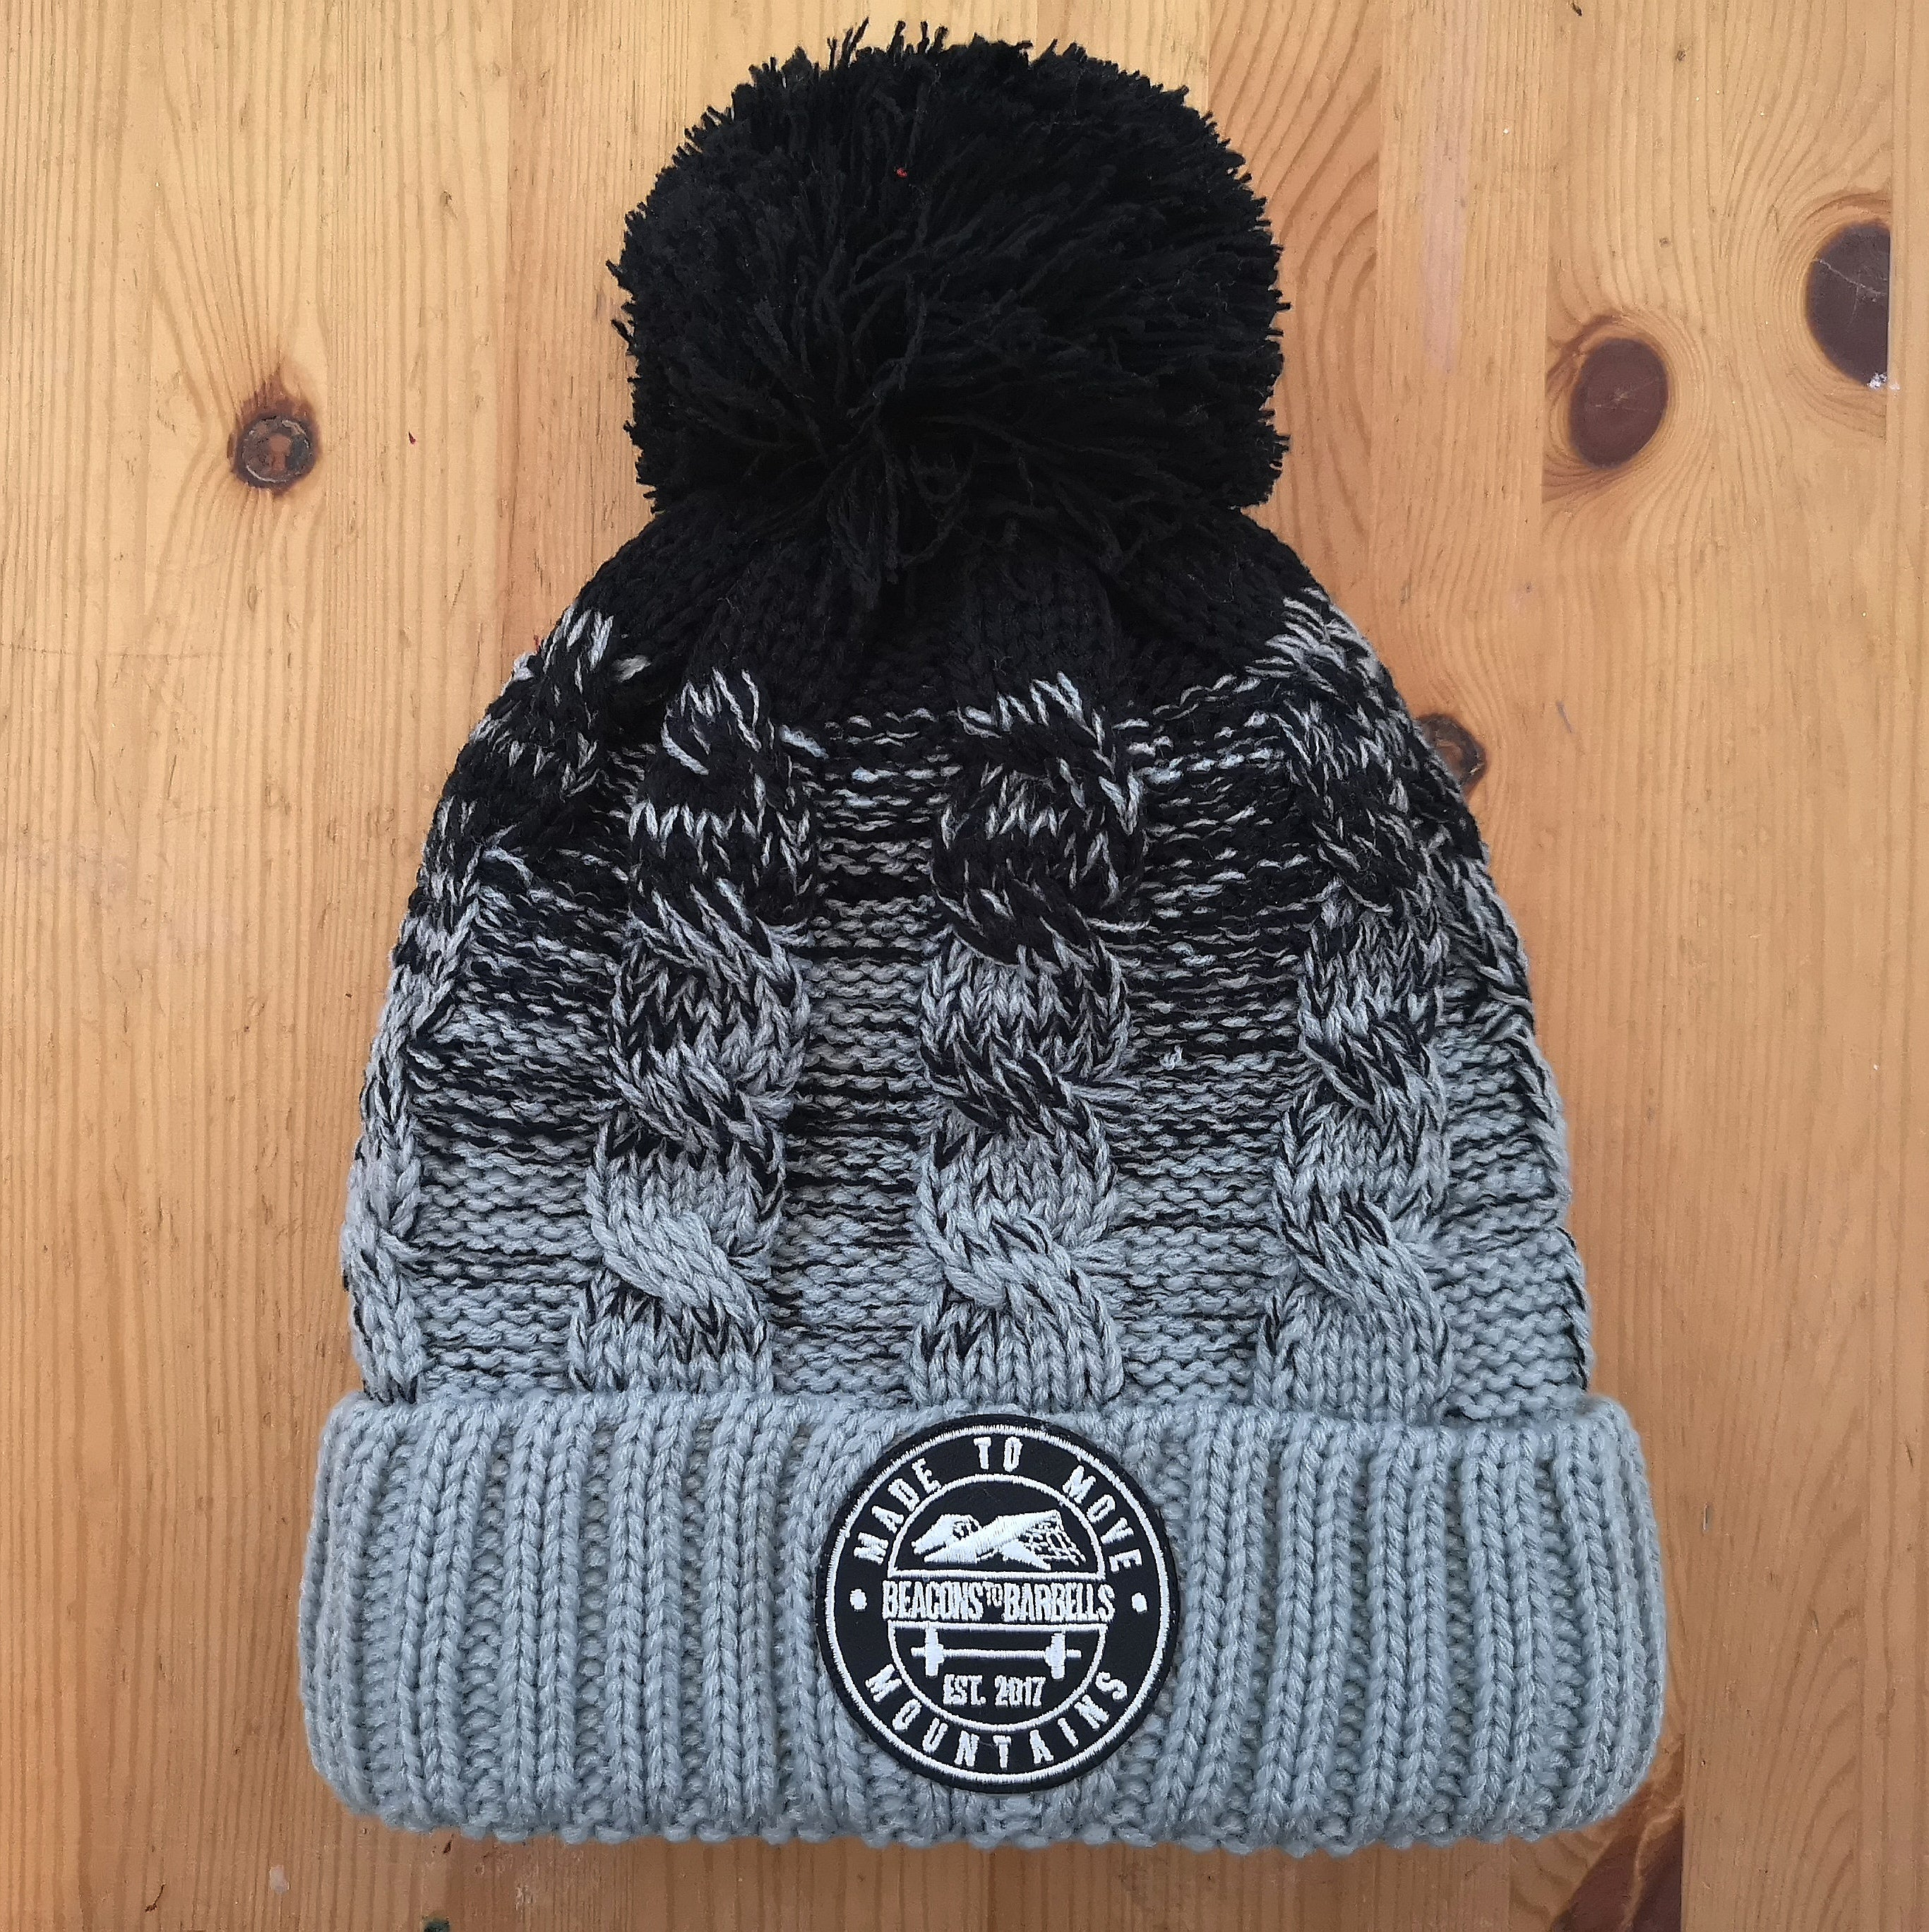 Ombré Black and Grey bobble hat